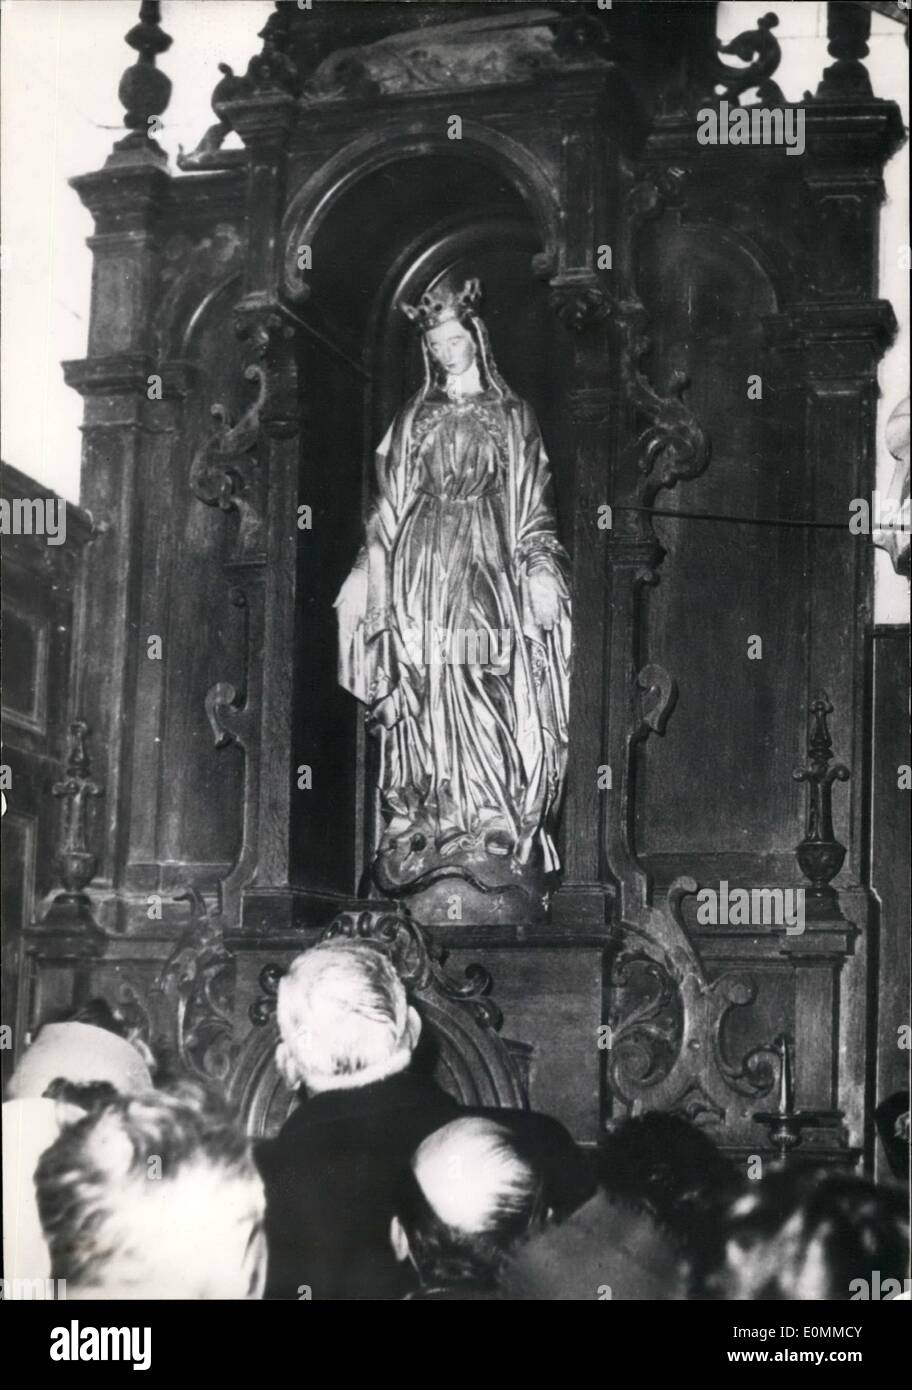 Dec. 12, 1955 - Villagers Report Statue Of Virgin Moves Her Eyelids: Some of the inhabitants of Englancourt, a village in the Aisne District, claim they have seen the statue of the virgin placed in the village church move their eyelids. The rumours reported in the French papers have put the Vittle village into a sudden limelight. Photo Shows: The ''Miracle'' statue of the virgin in its recess at the Eglancourt church - Stock Image